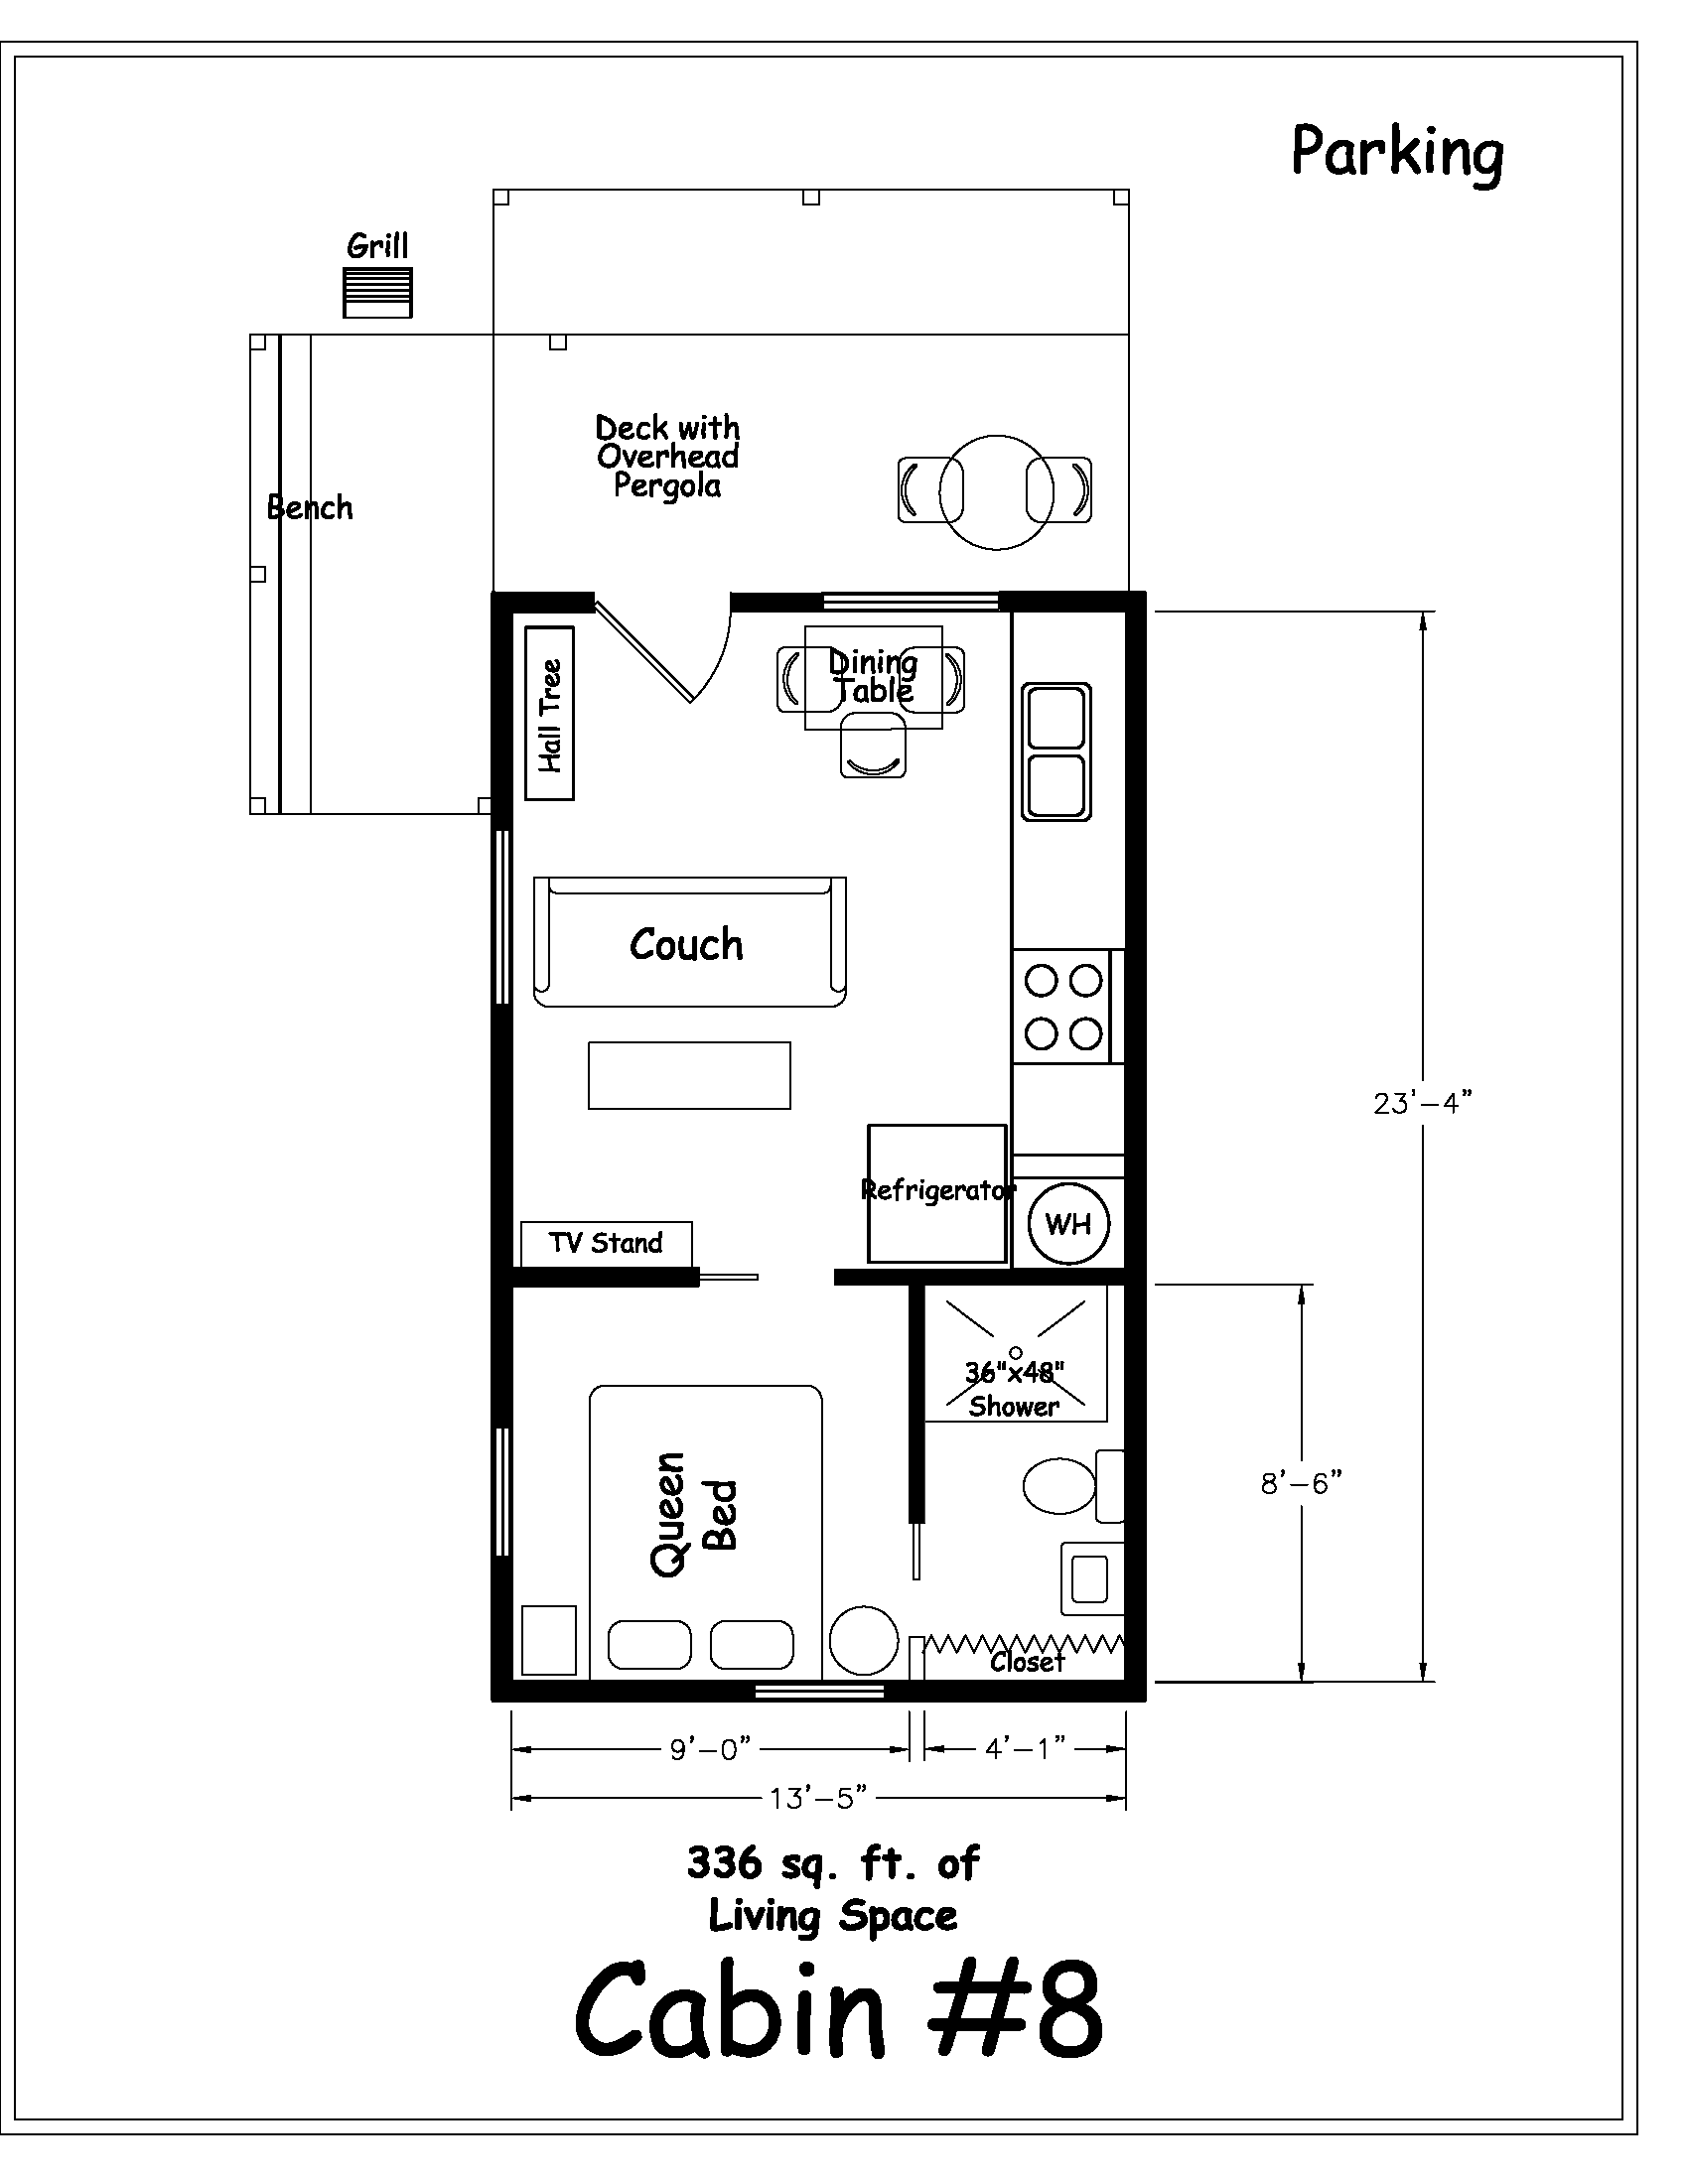 Pdf diy cabin resort plans download cabinet making plywood Cabin floor plan